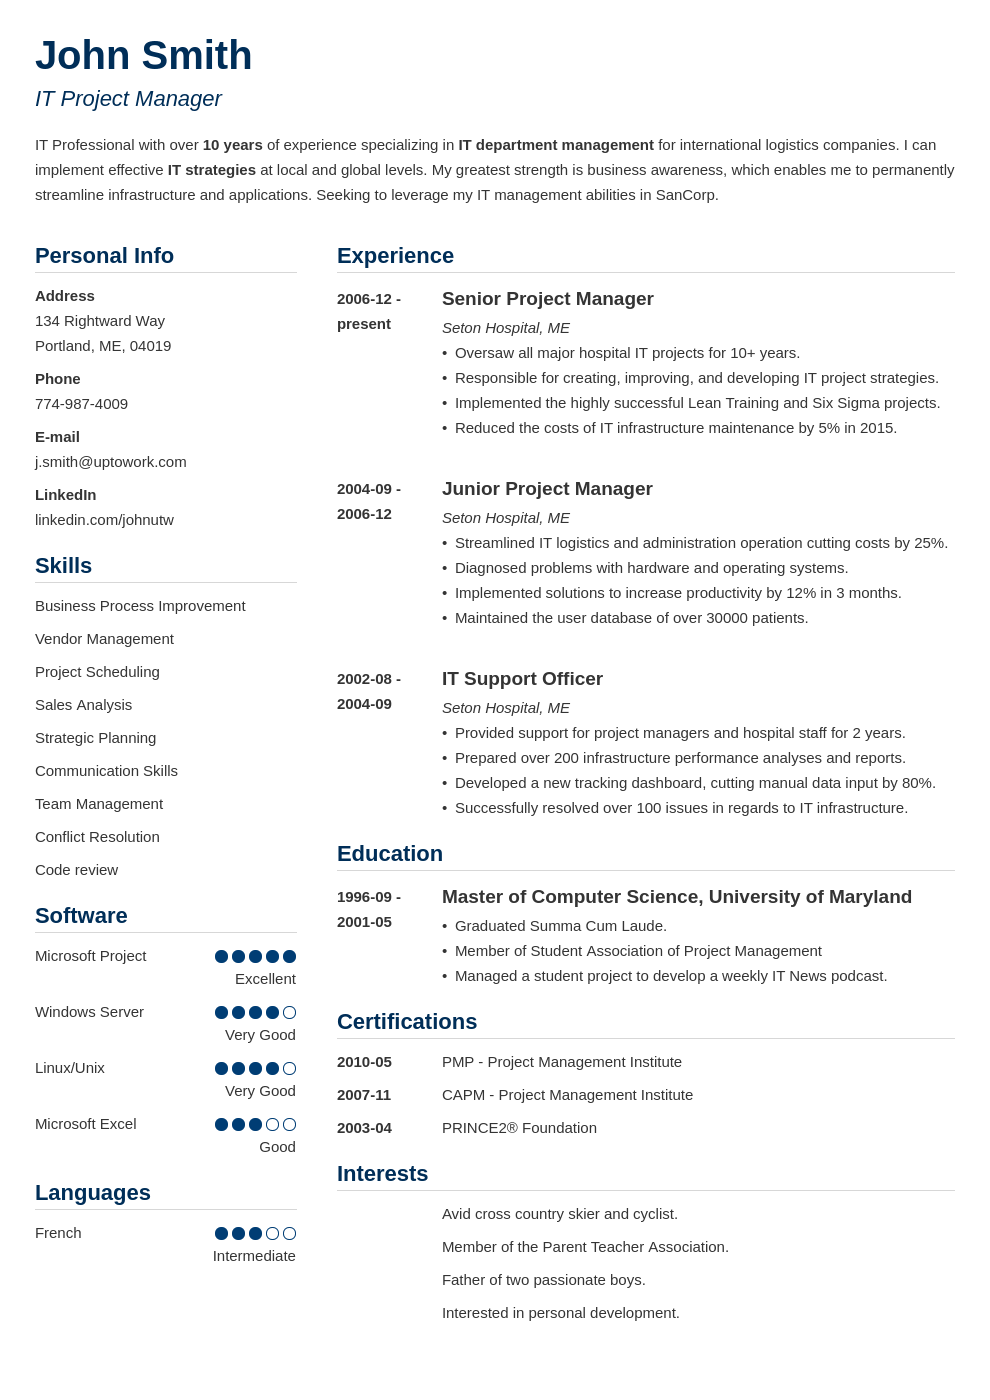 Marvelous US Recommended Professional Resume Template Simple Regarding Reume Templates